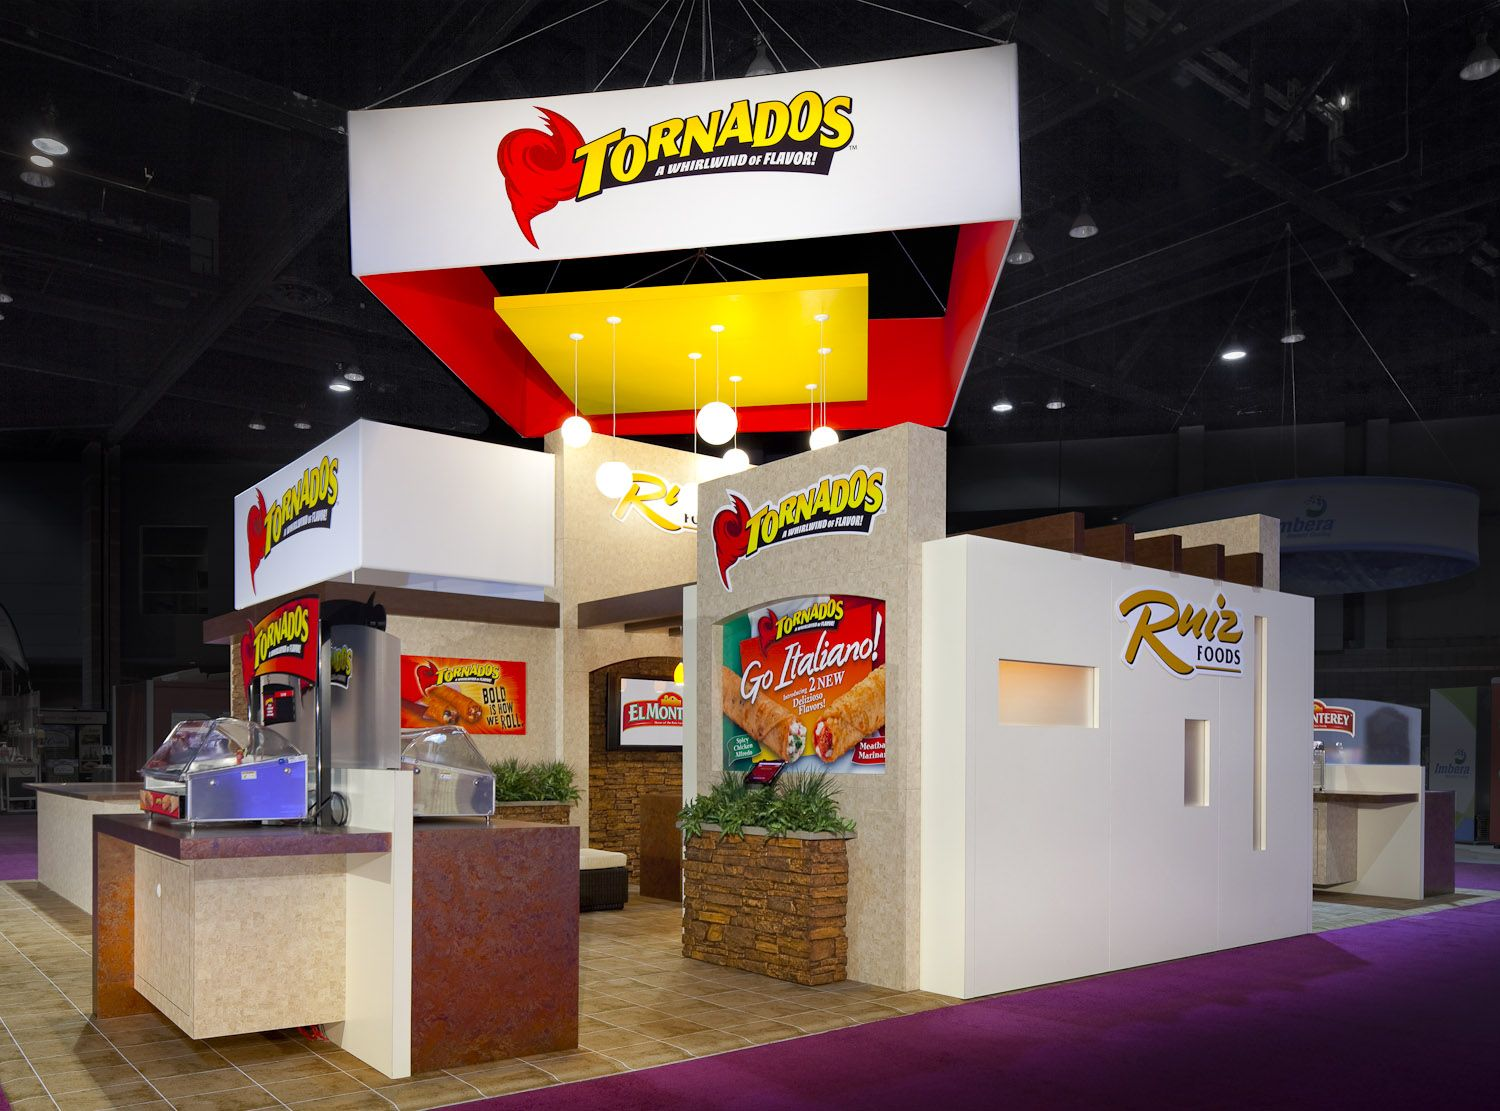 Exhibition Stand Design Sample : Ruiz foods trade show exhibit featured two separate brands